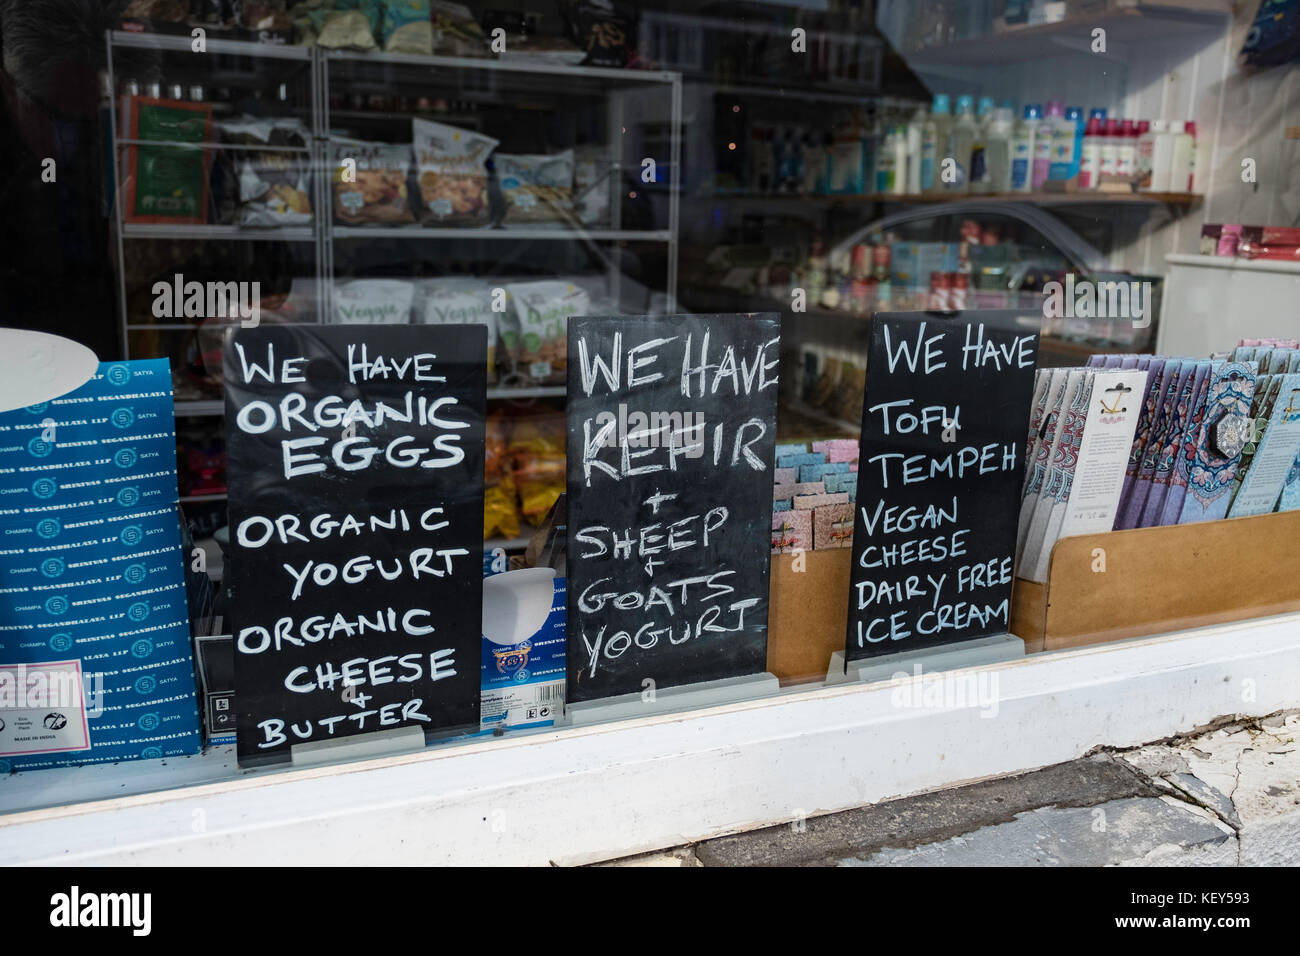 Window display of signs showing organic foods for sale in Deli shop in historic village of Crail in East Neuk of - Stock Image